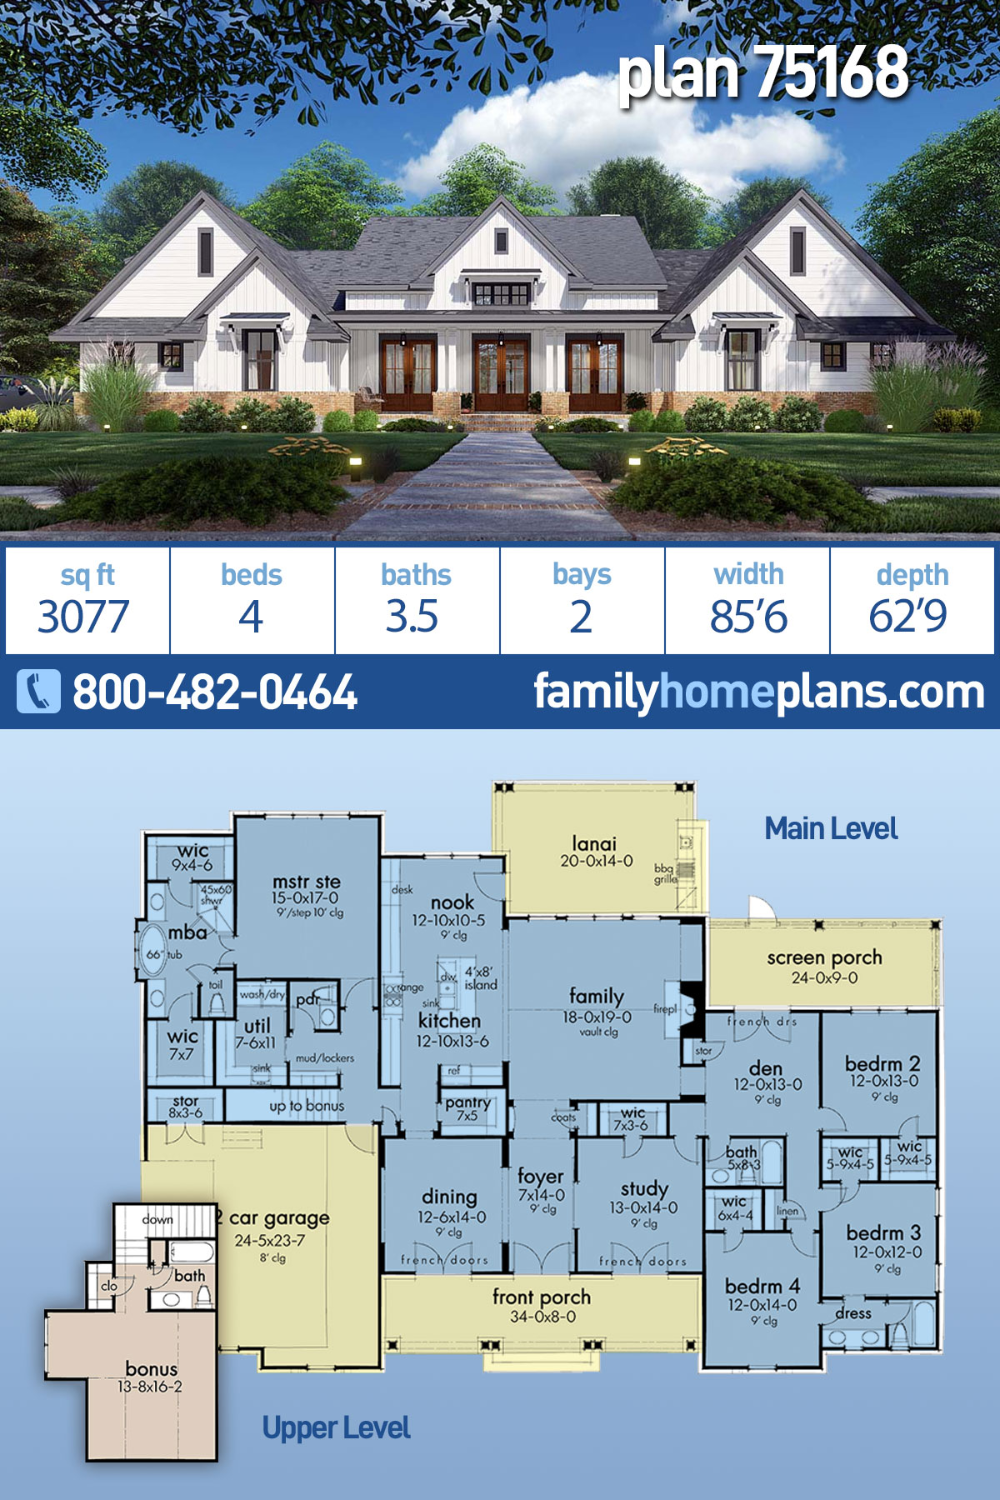 Southern Style House Plan 75168 With 4 Bed 4 Bath 2 Car Garage Modern Farmhouse Plans House Plans Farmhouse Dream House Plans